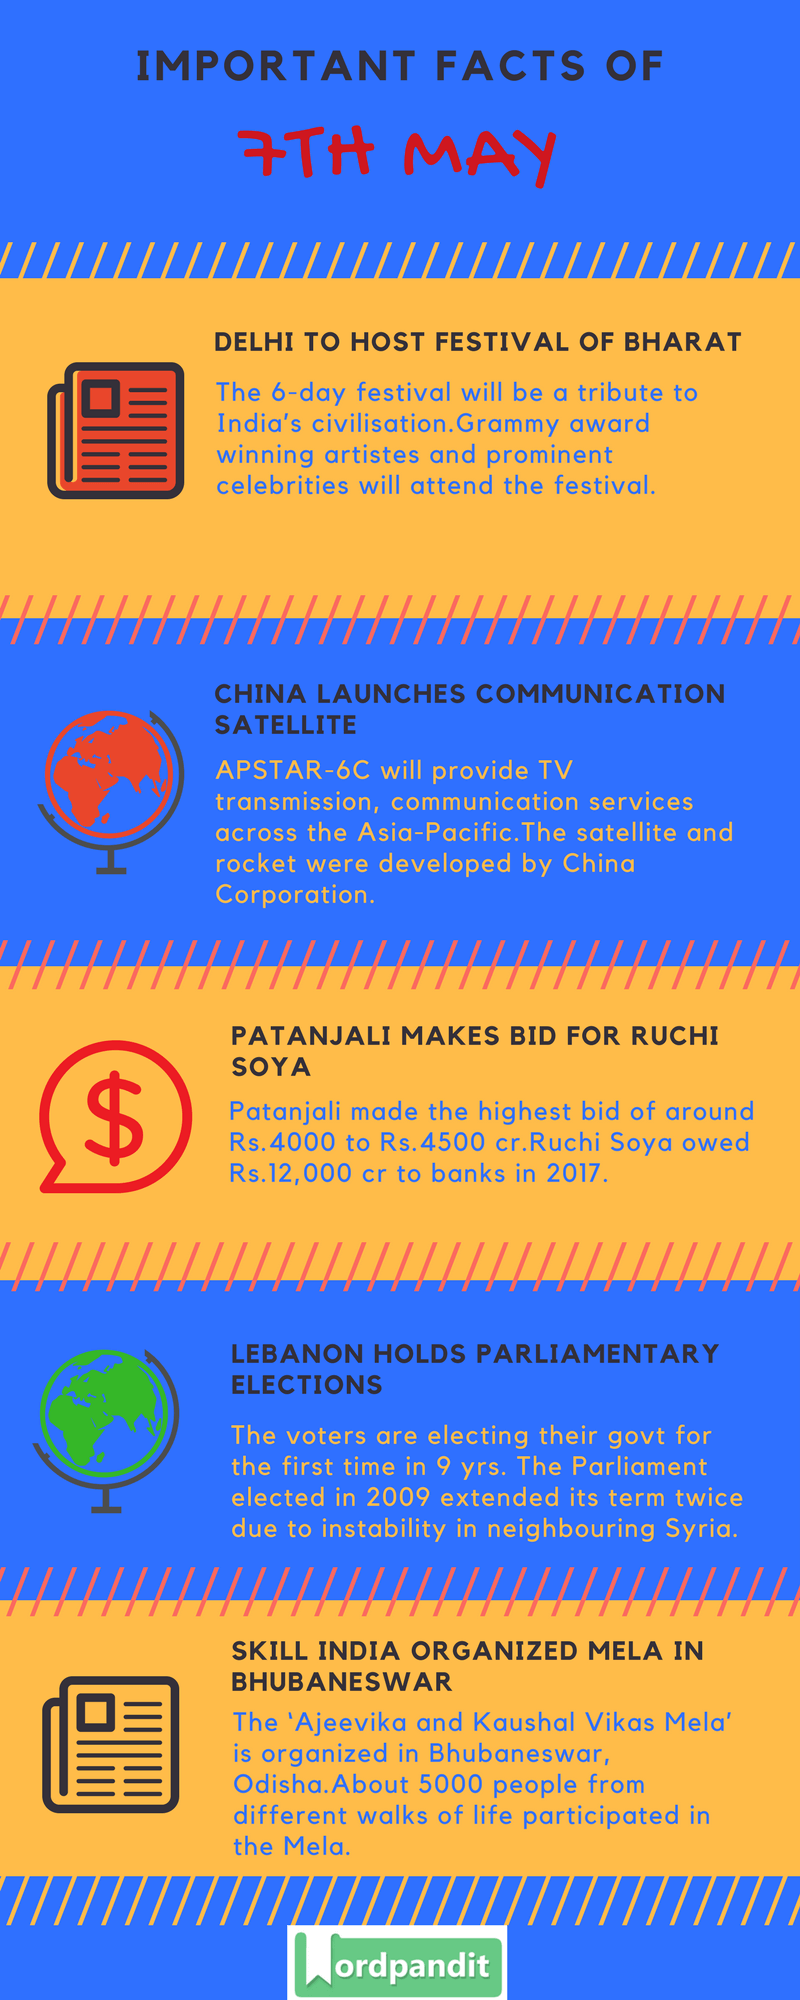 Daily Current Affairs 7 May 2018 Current Affairs Quiz May 7 2018 Current Affairs Infographic